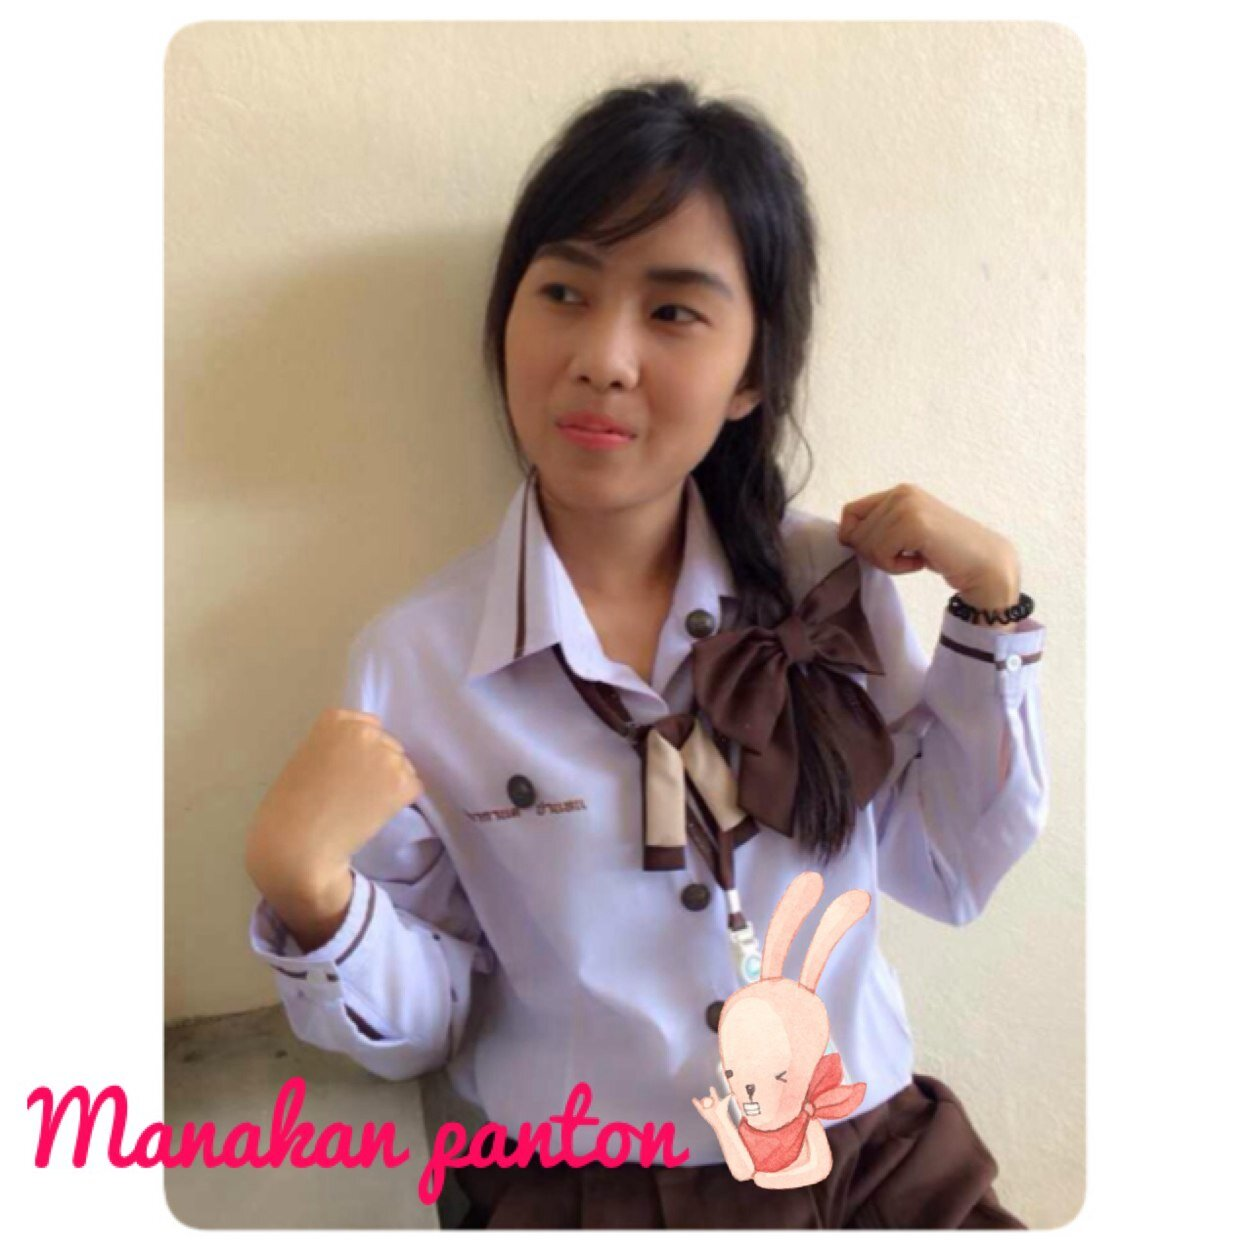 ppppppp (@ploy_manakan) | Twitter